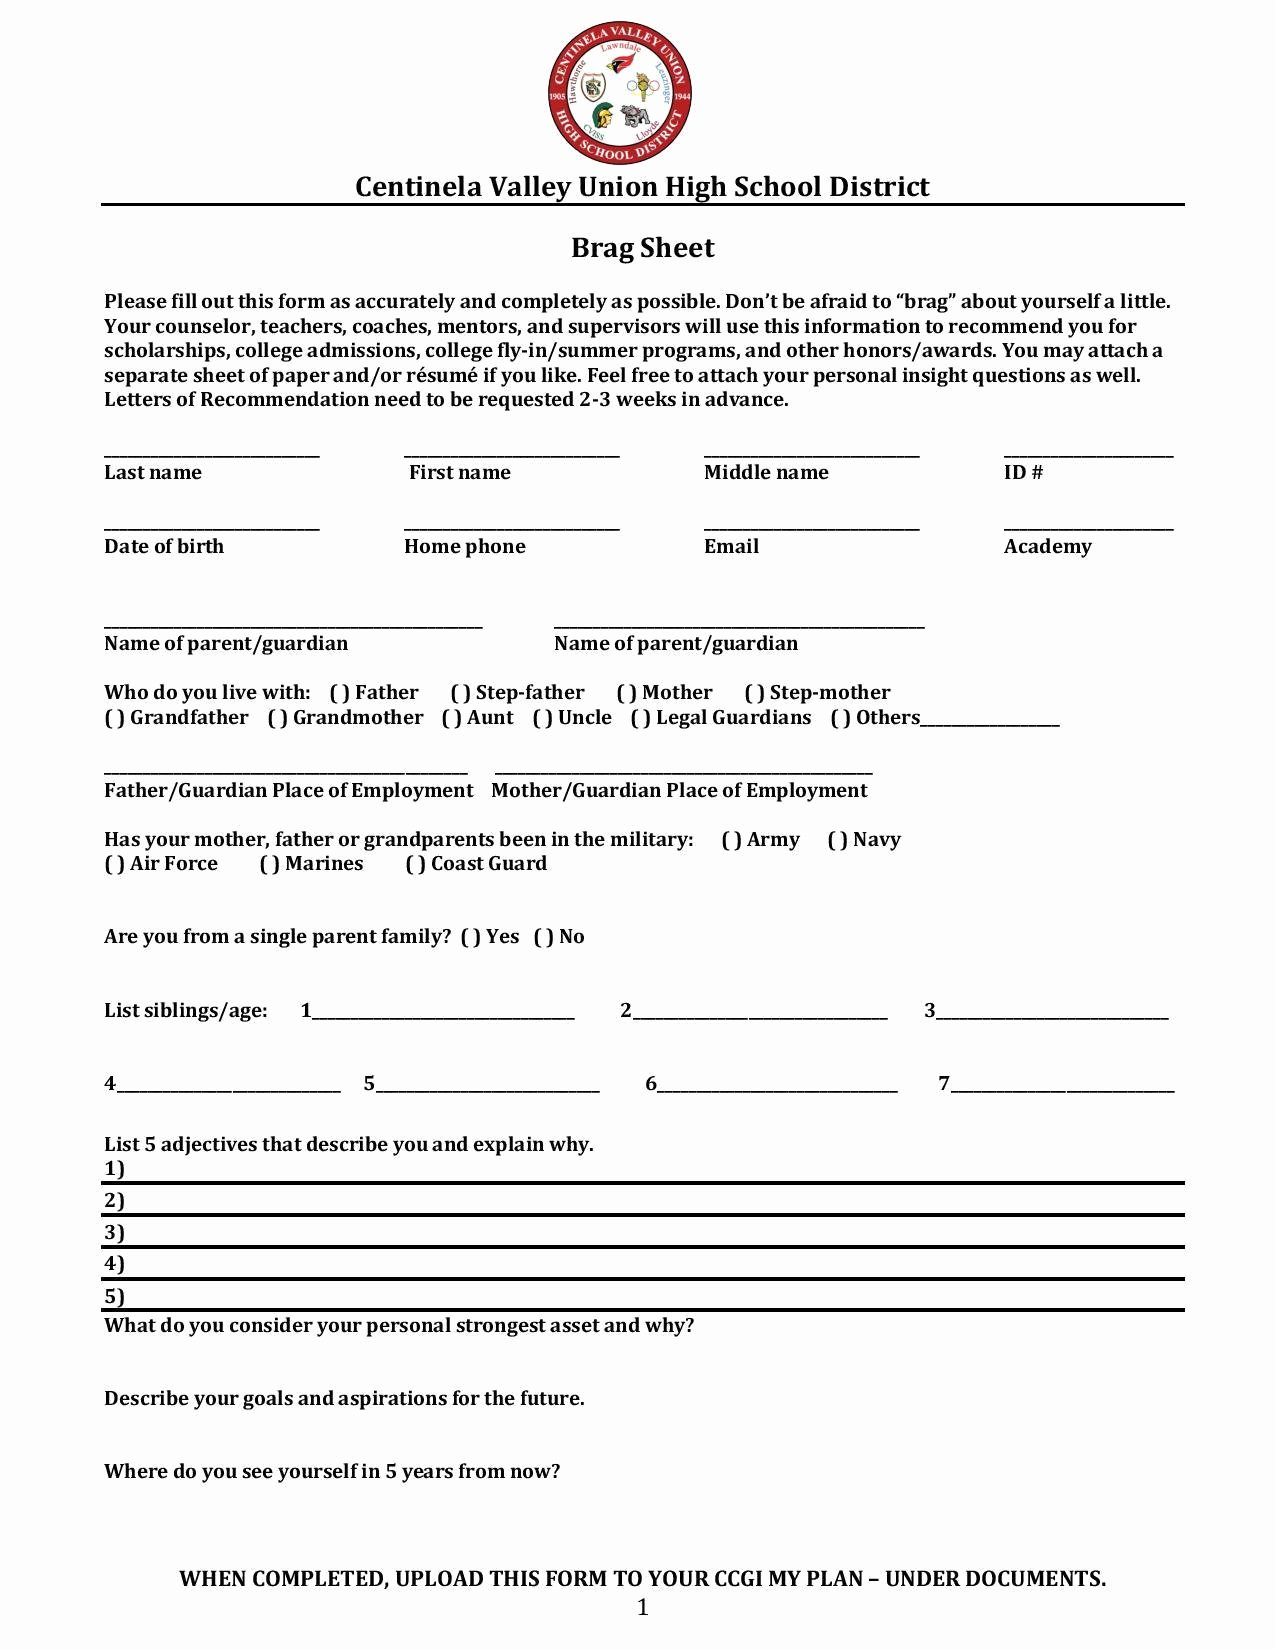 Faa Letter Of Recommendation Sample New Brag Sheet Letter Of Rec – Counseling – Lawndale High School